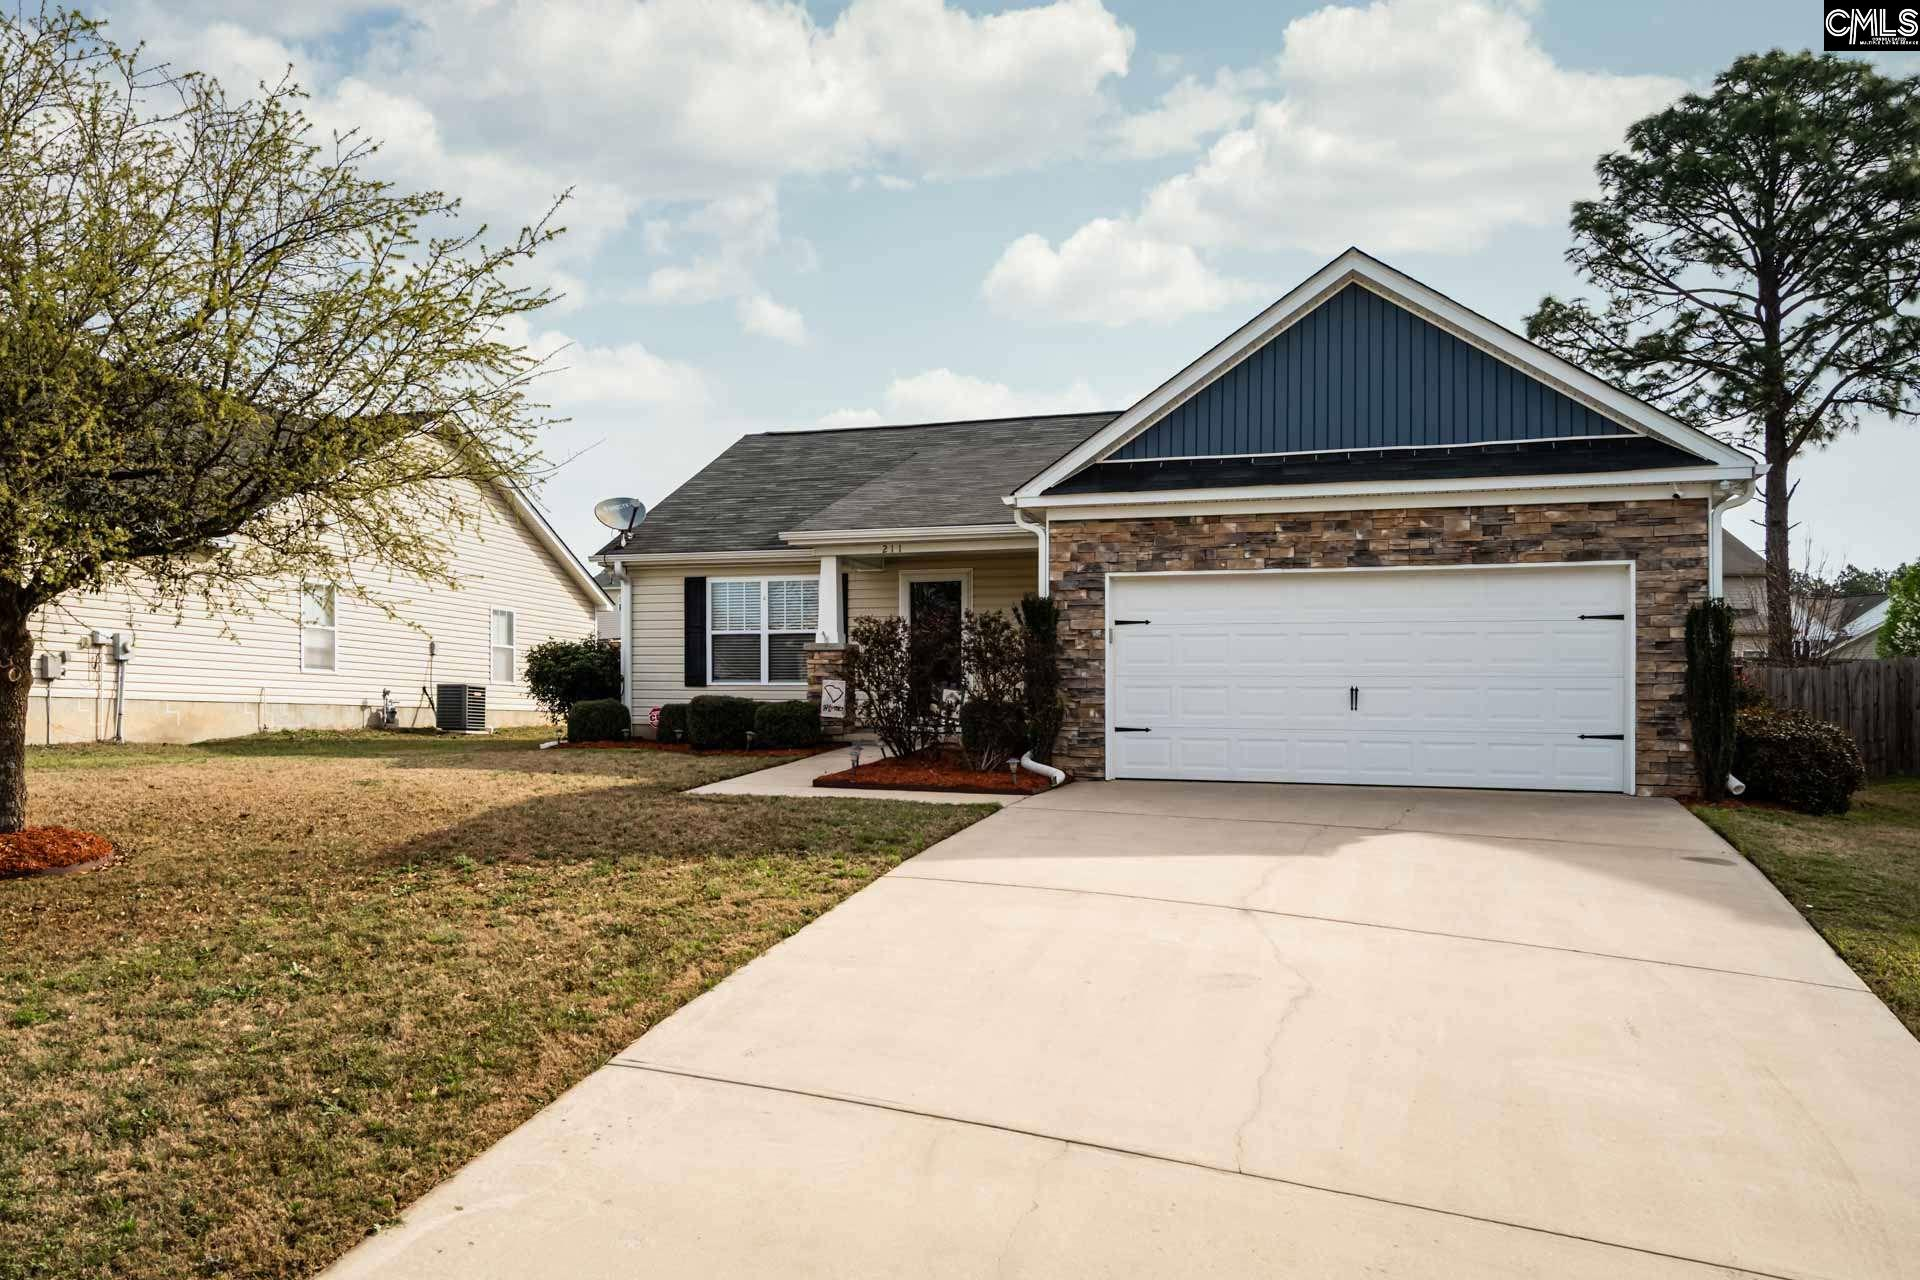 211 Glenforest Lexington, SC 29072